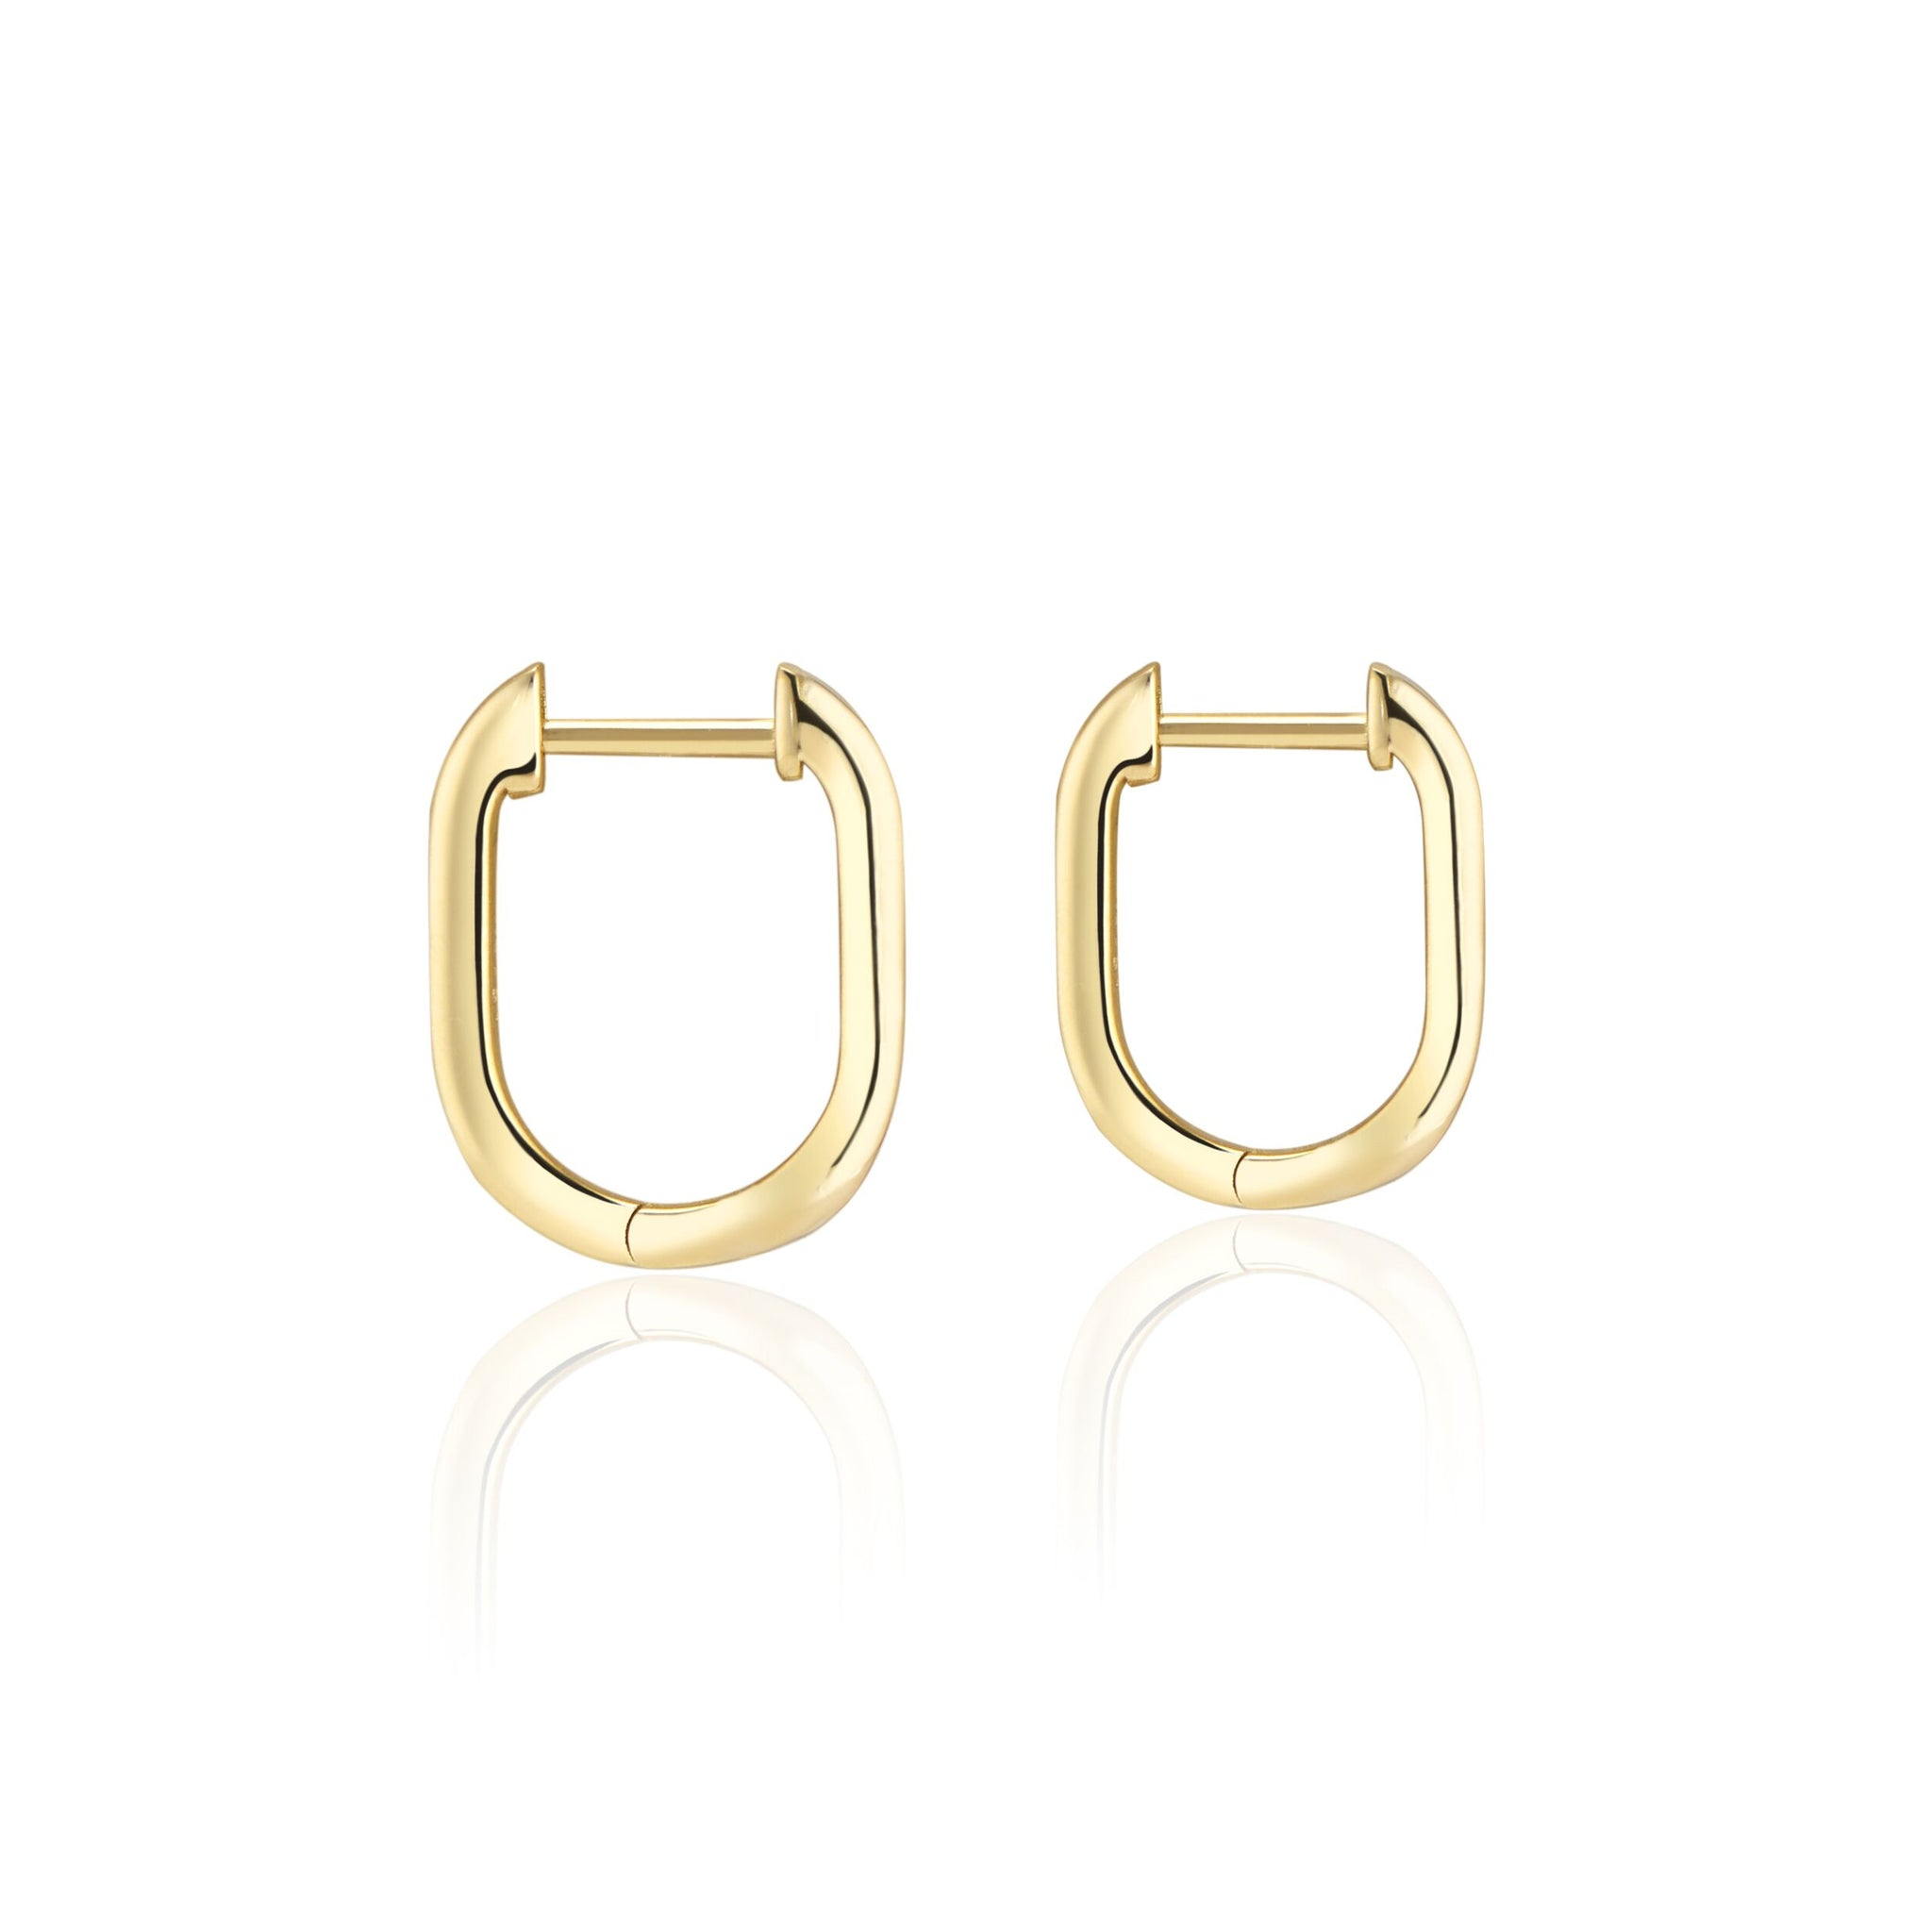 Noor Shamma 18k U Huggies Earrings